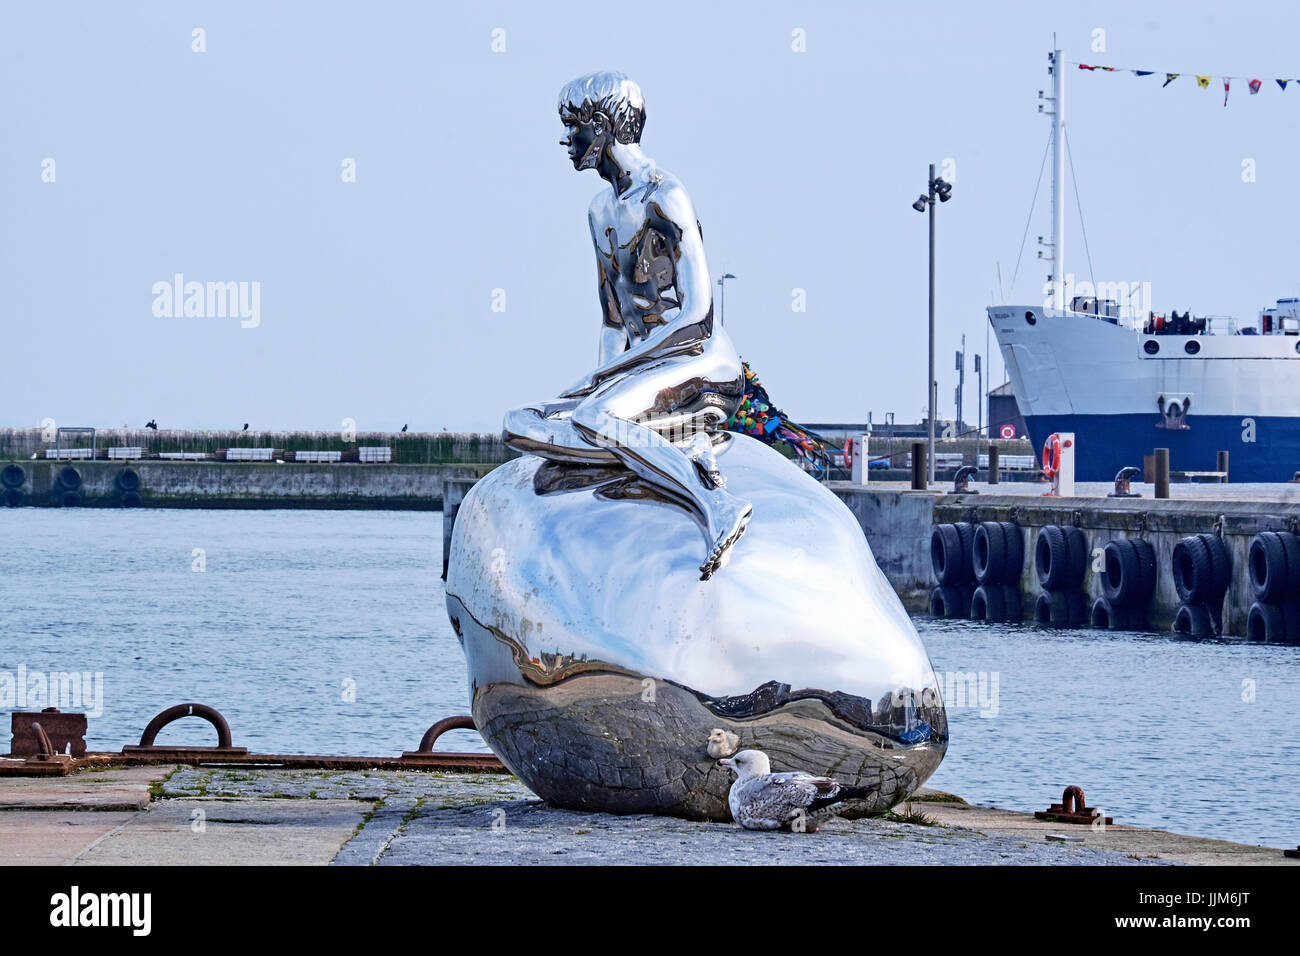 ELSINORE, DENMARK - APRIL 30, 2016: The sculpture Han, meaning He, by danish artists  Elmgreen and Dragset, made - Stock Image